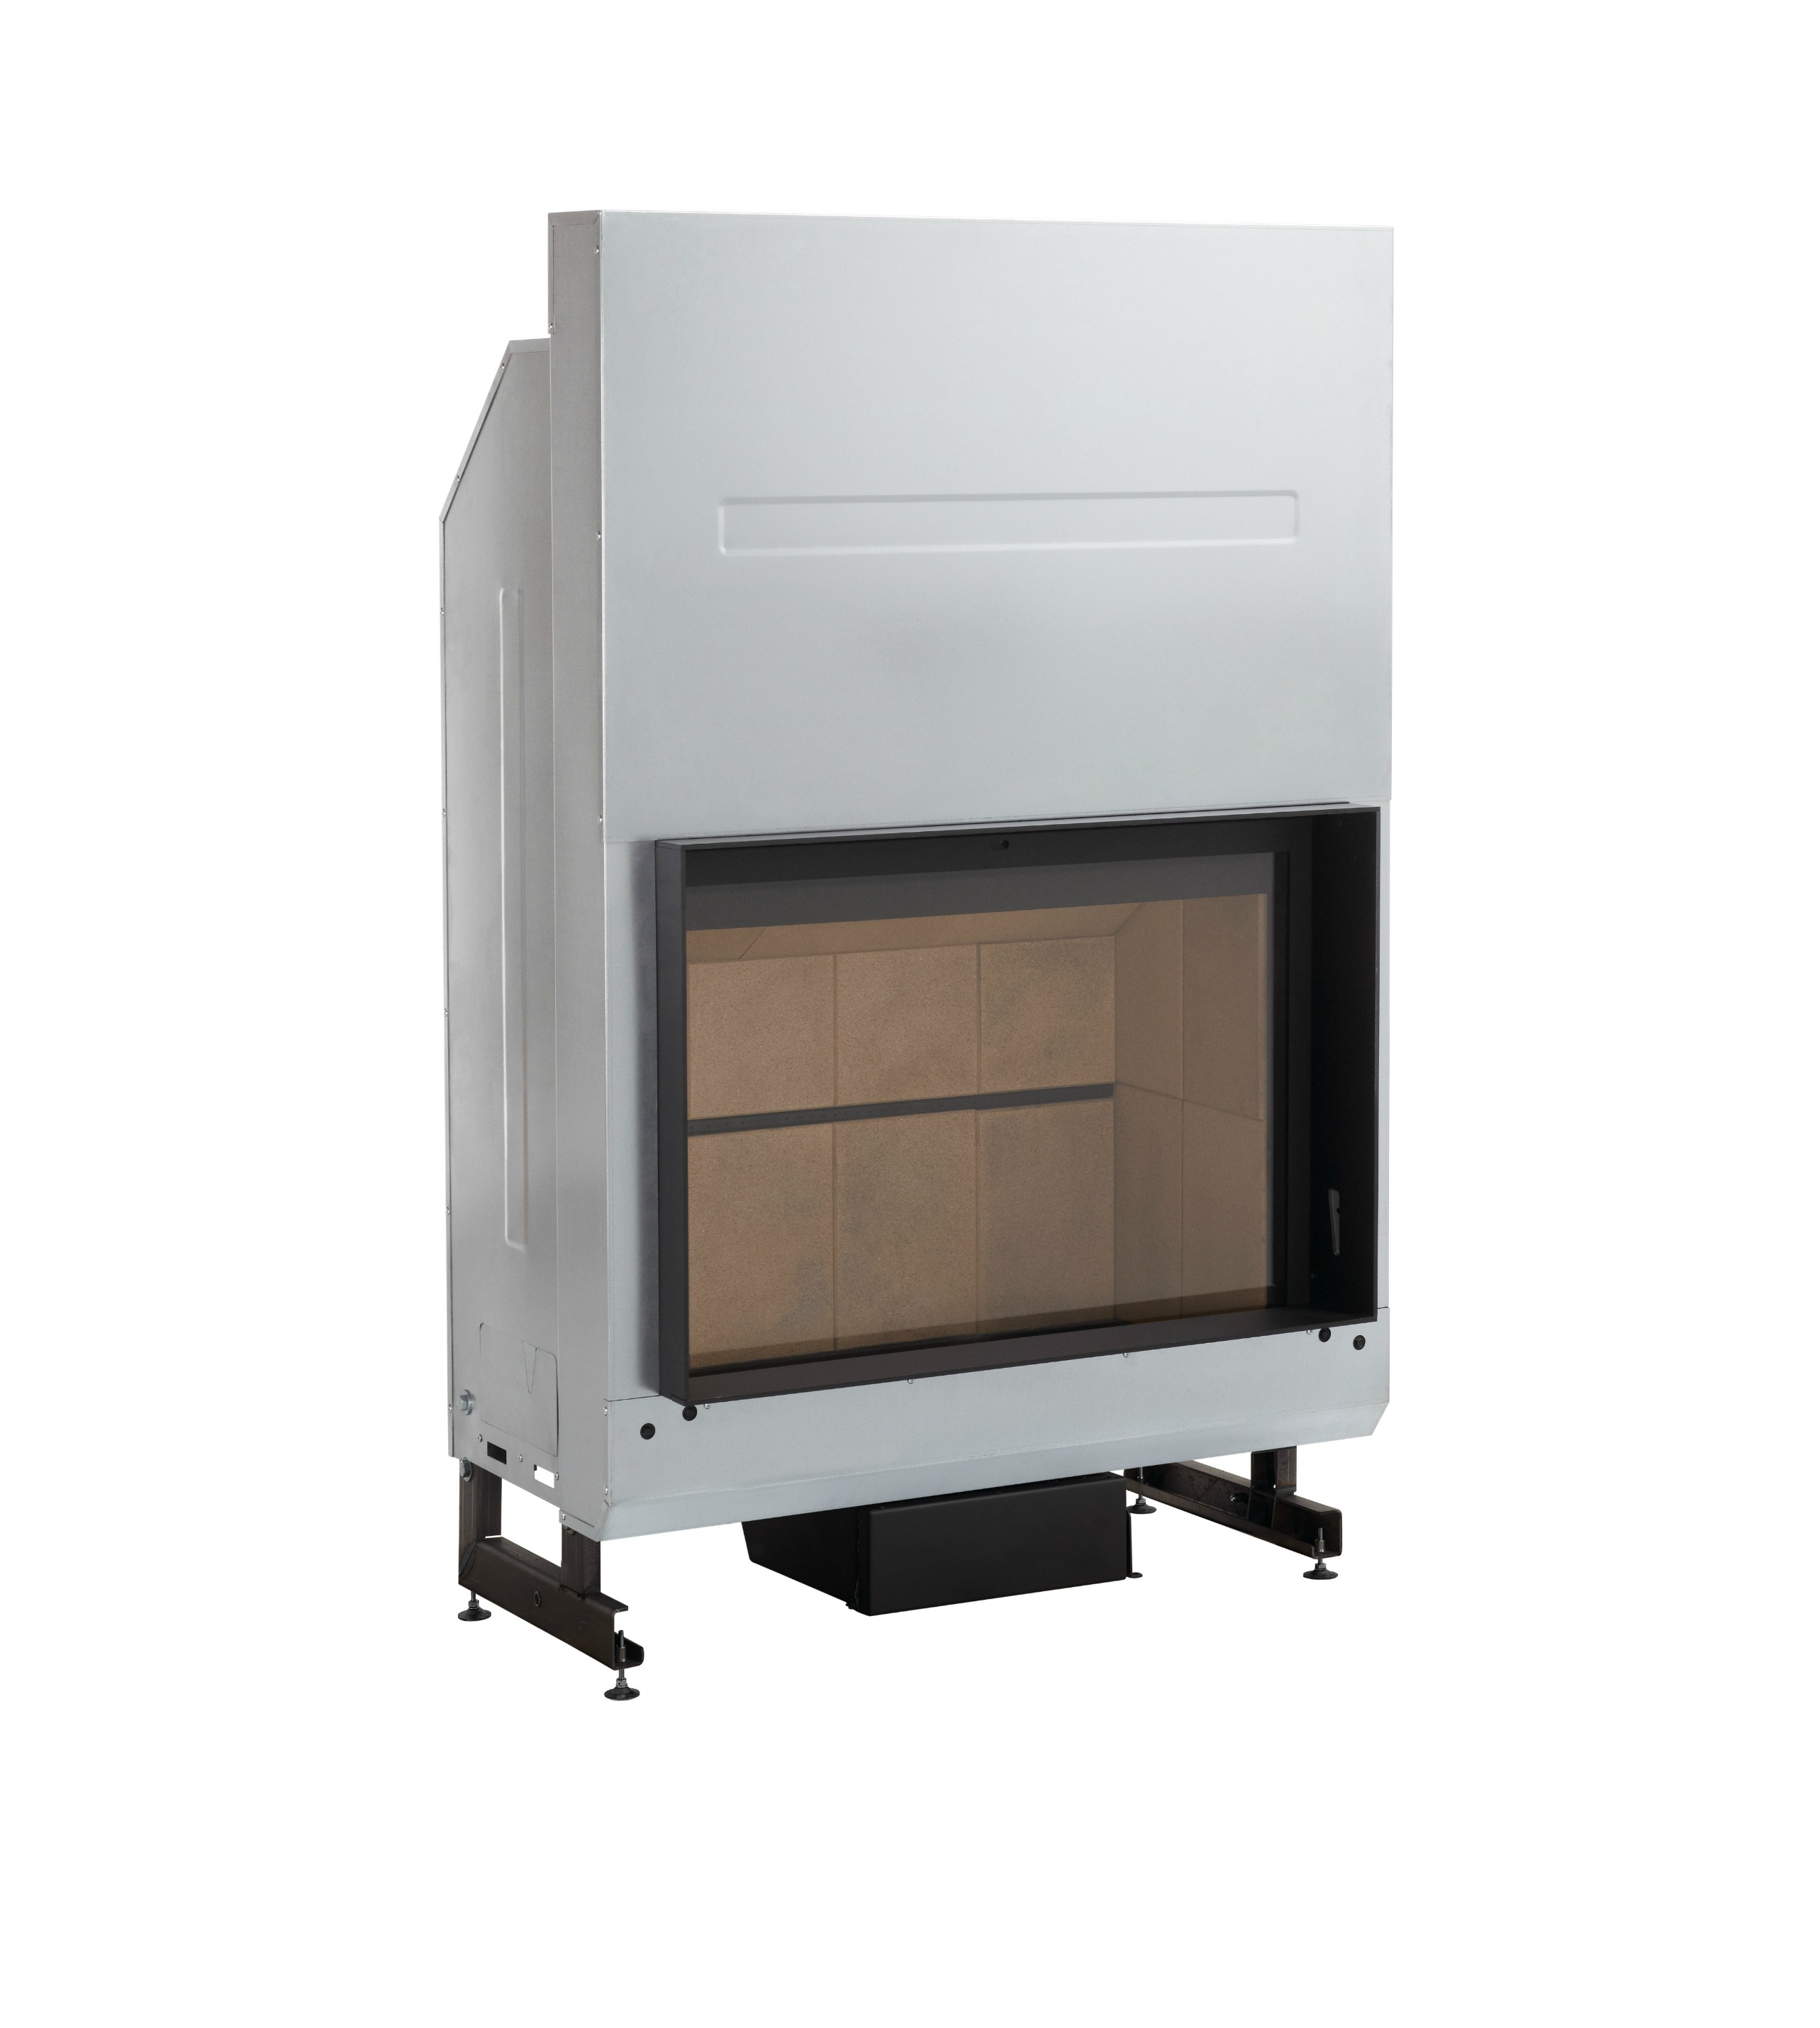 Rocal G400 Insert Stove